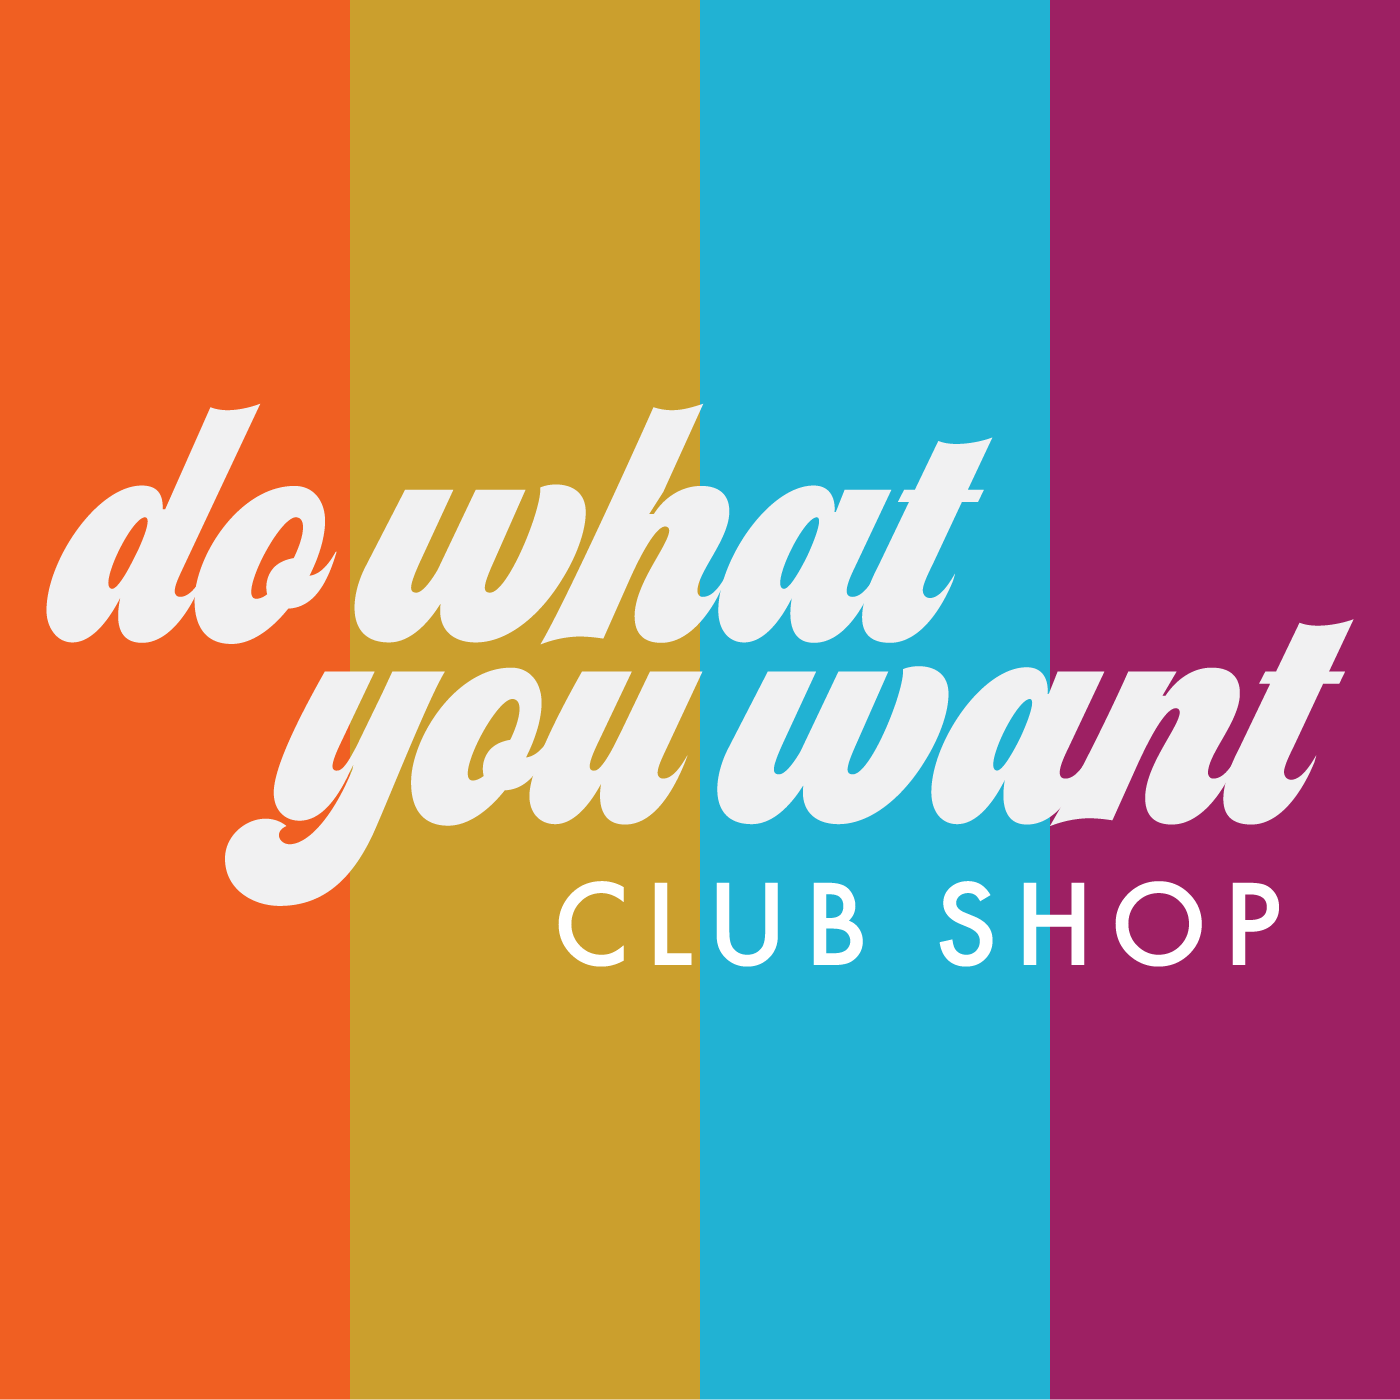 Rep the  brand identity  with Do What You Want club merch.